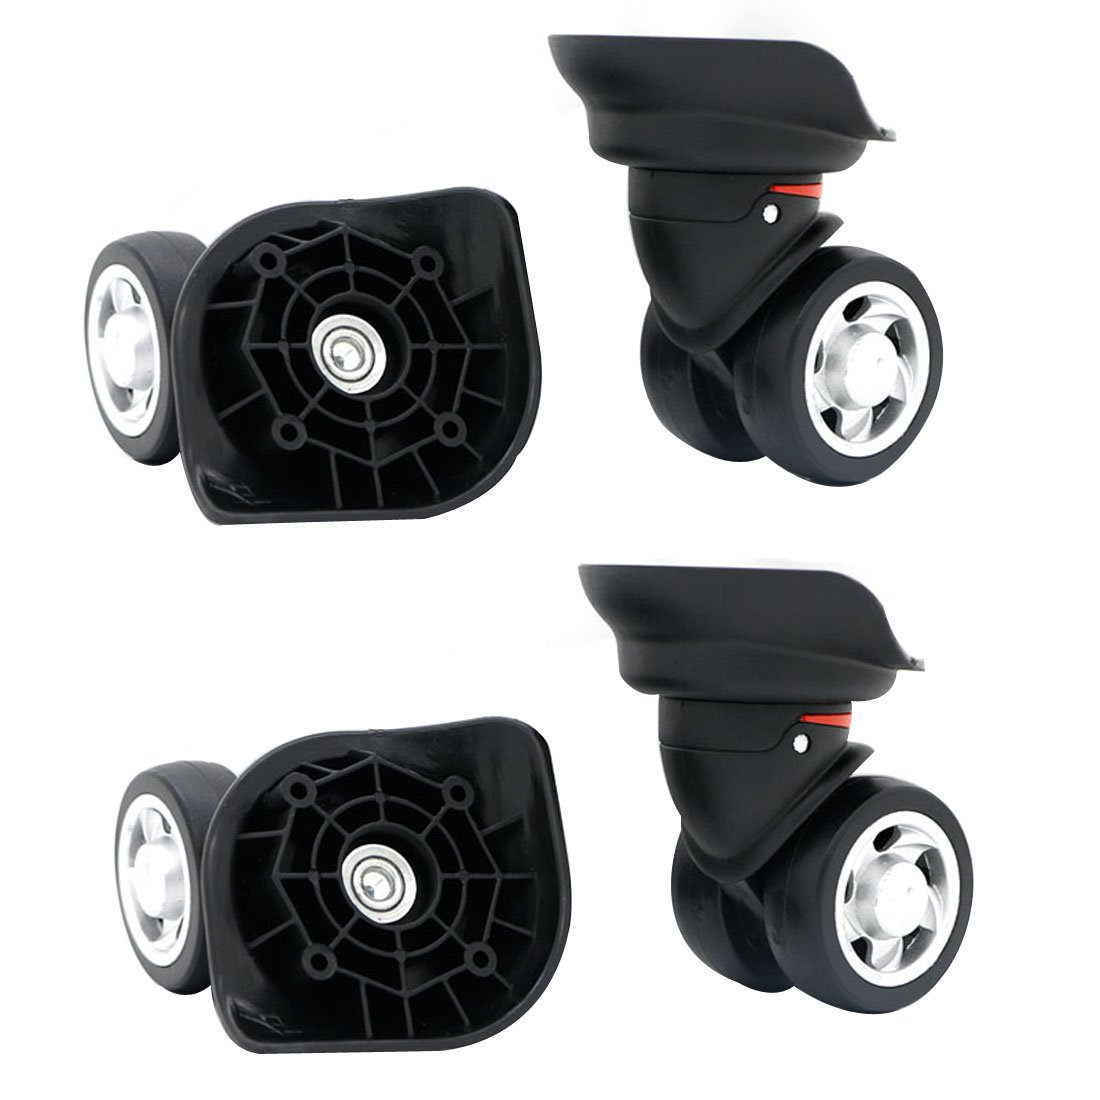 Replacement Luggage Wheel Repair Suitcase Bag Parts Spinner Wheels (W055) for Customs Box (A Set 4 pcs)